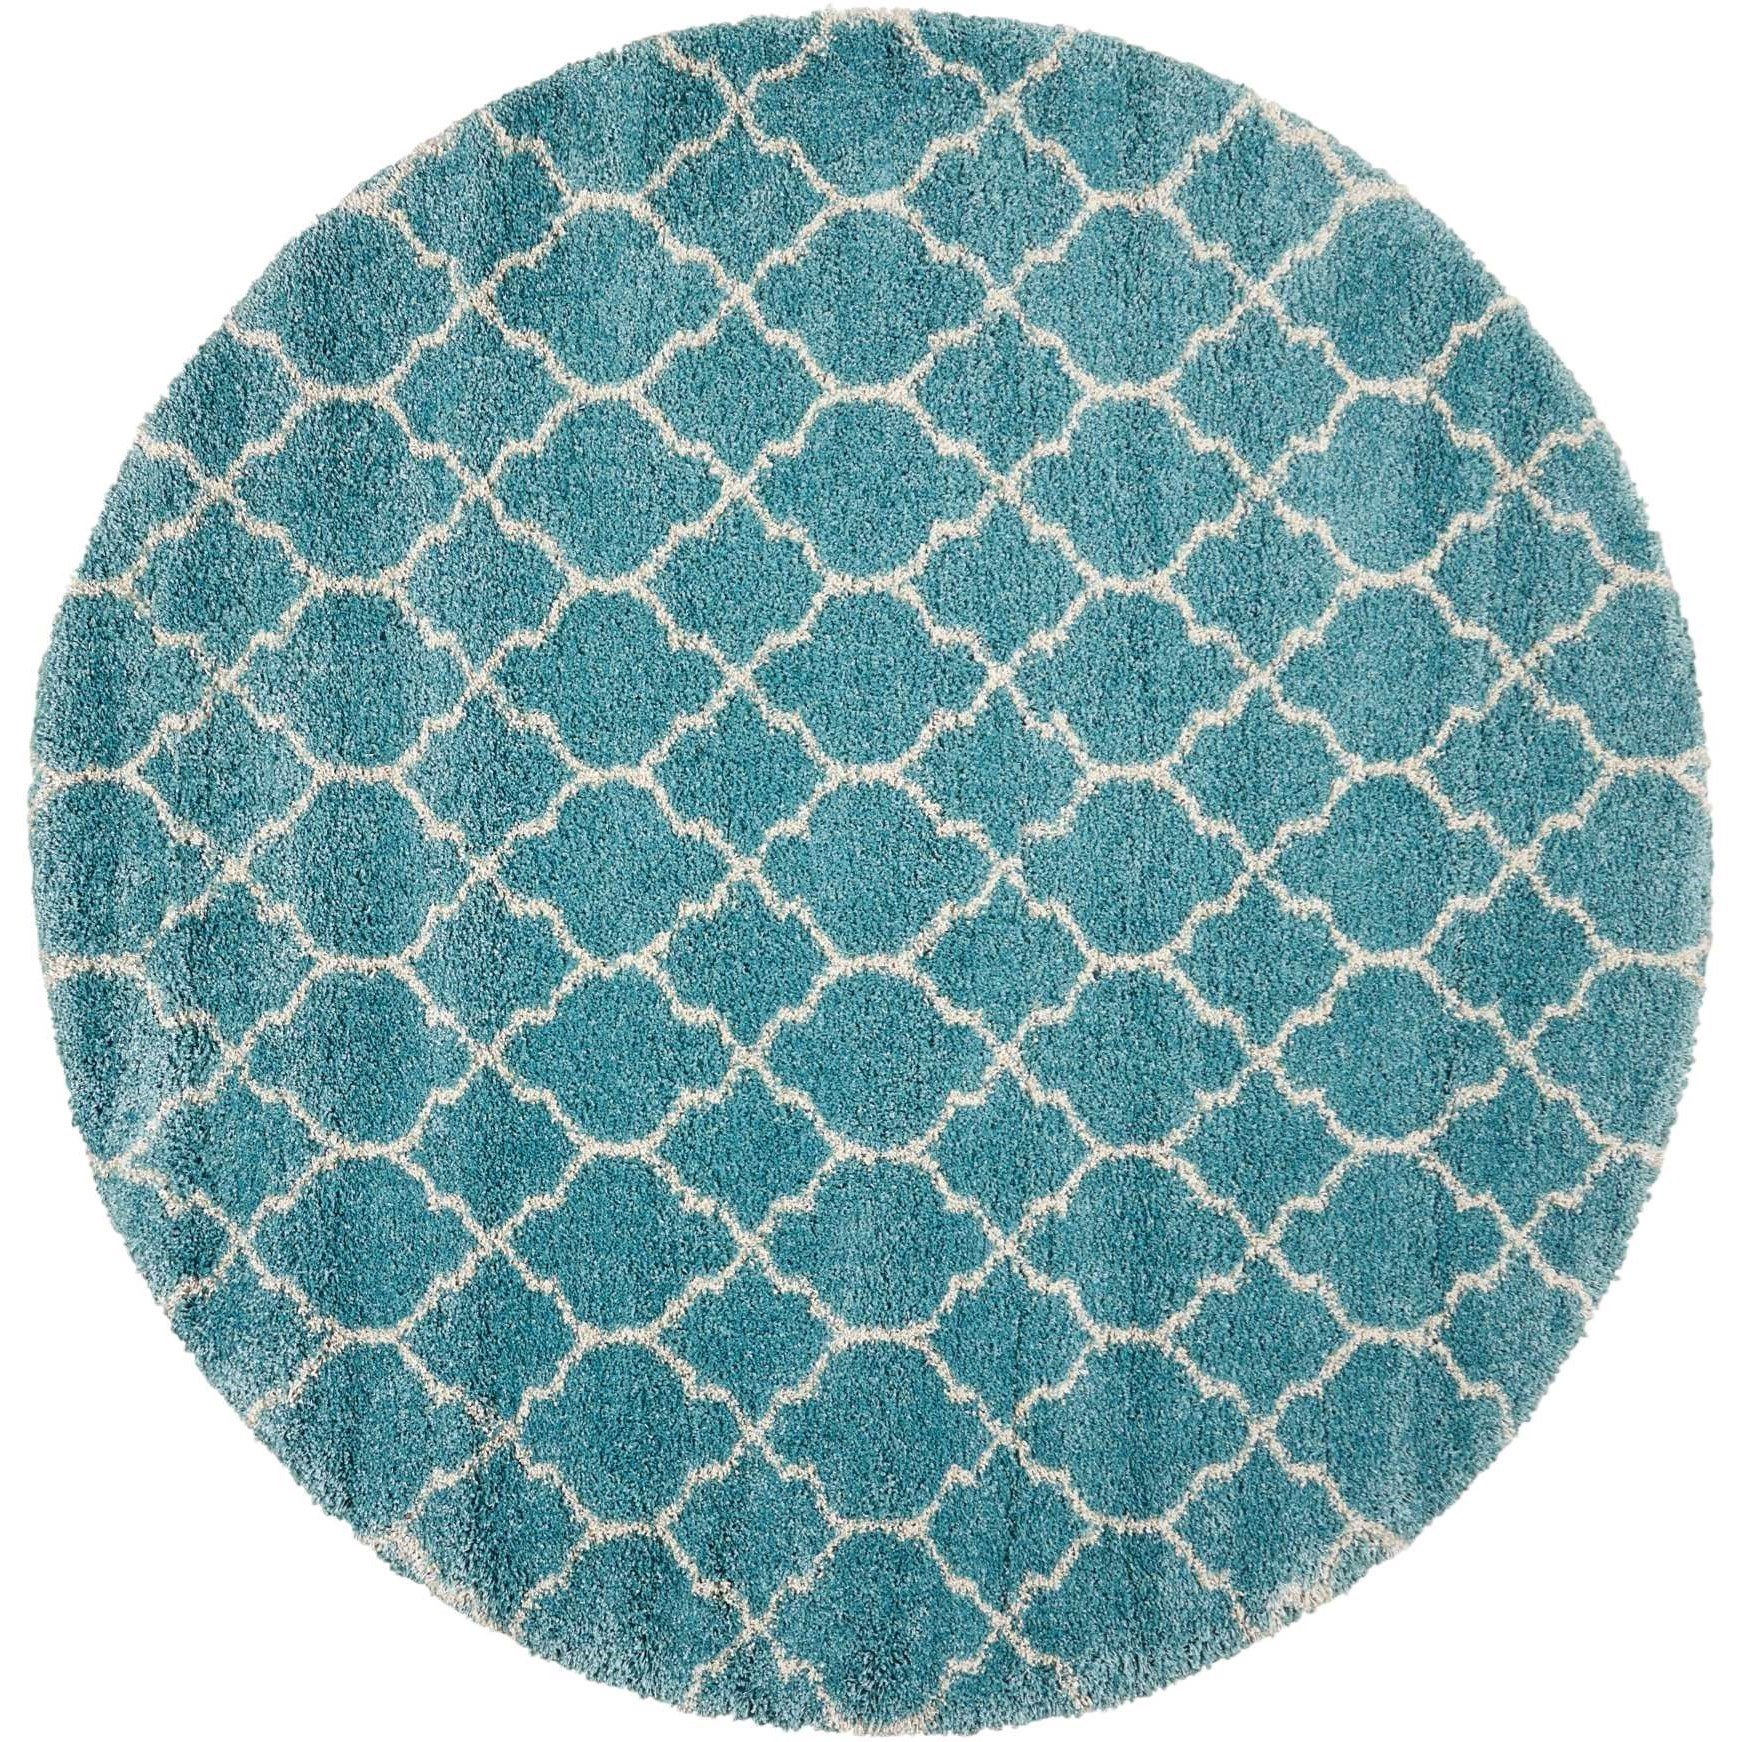 Amore Amore AMOR2 Blue 8' Round   Rug by Nourison at Home Collections Furniture